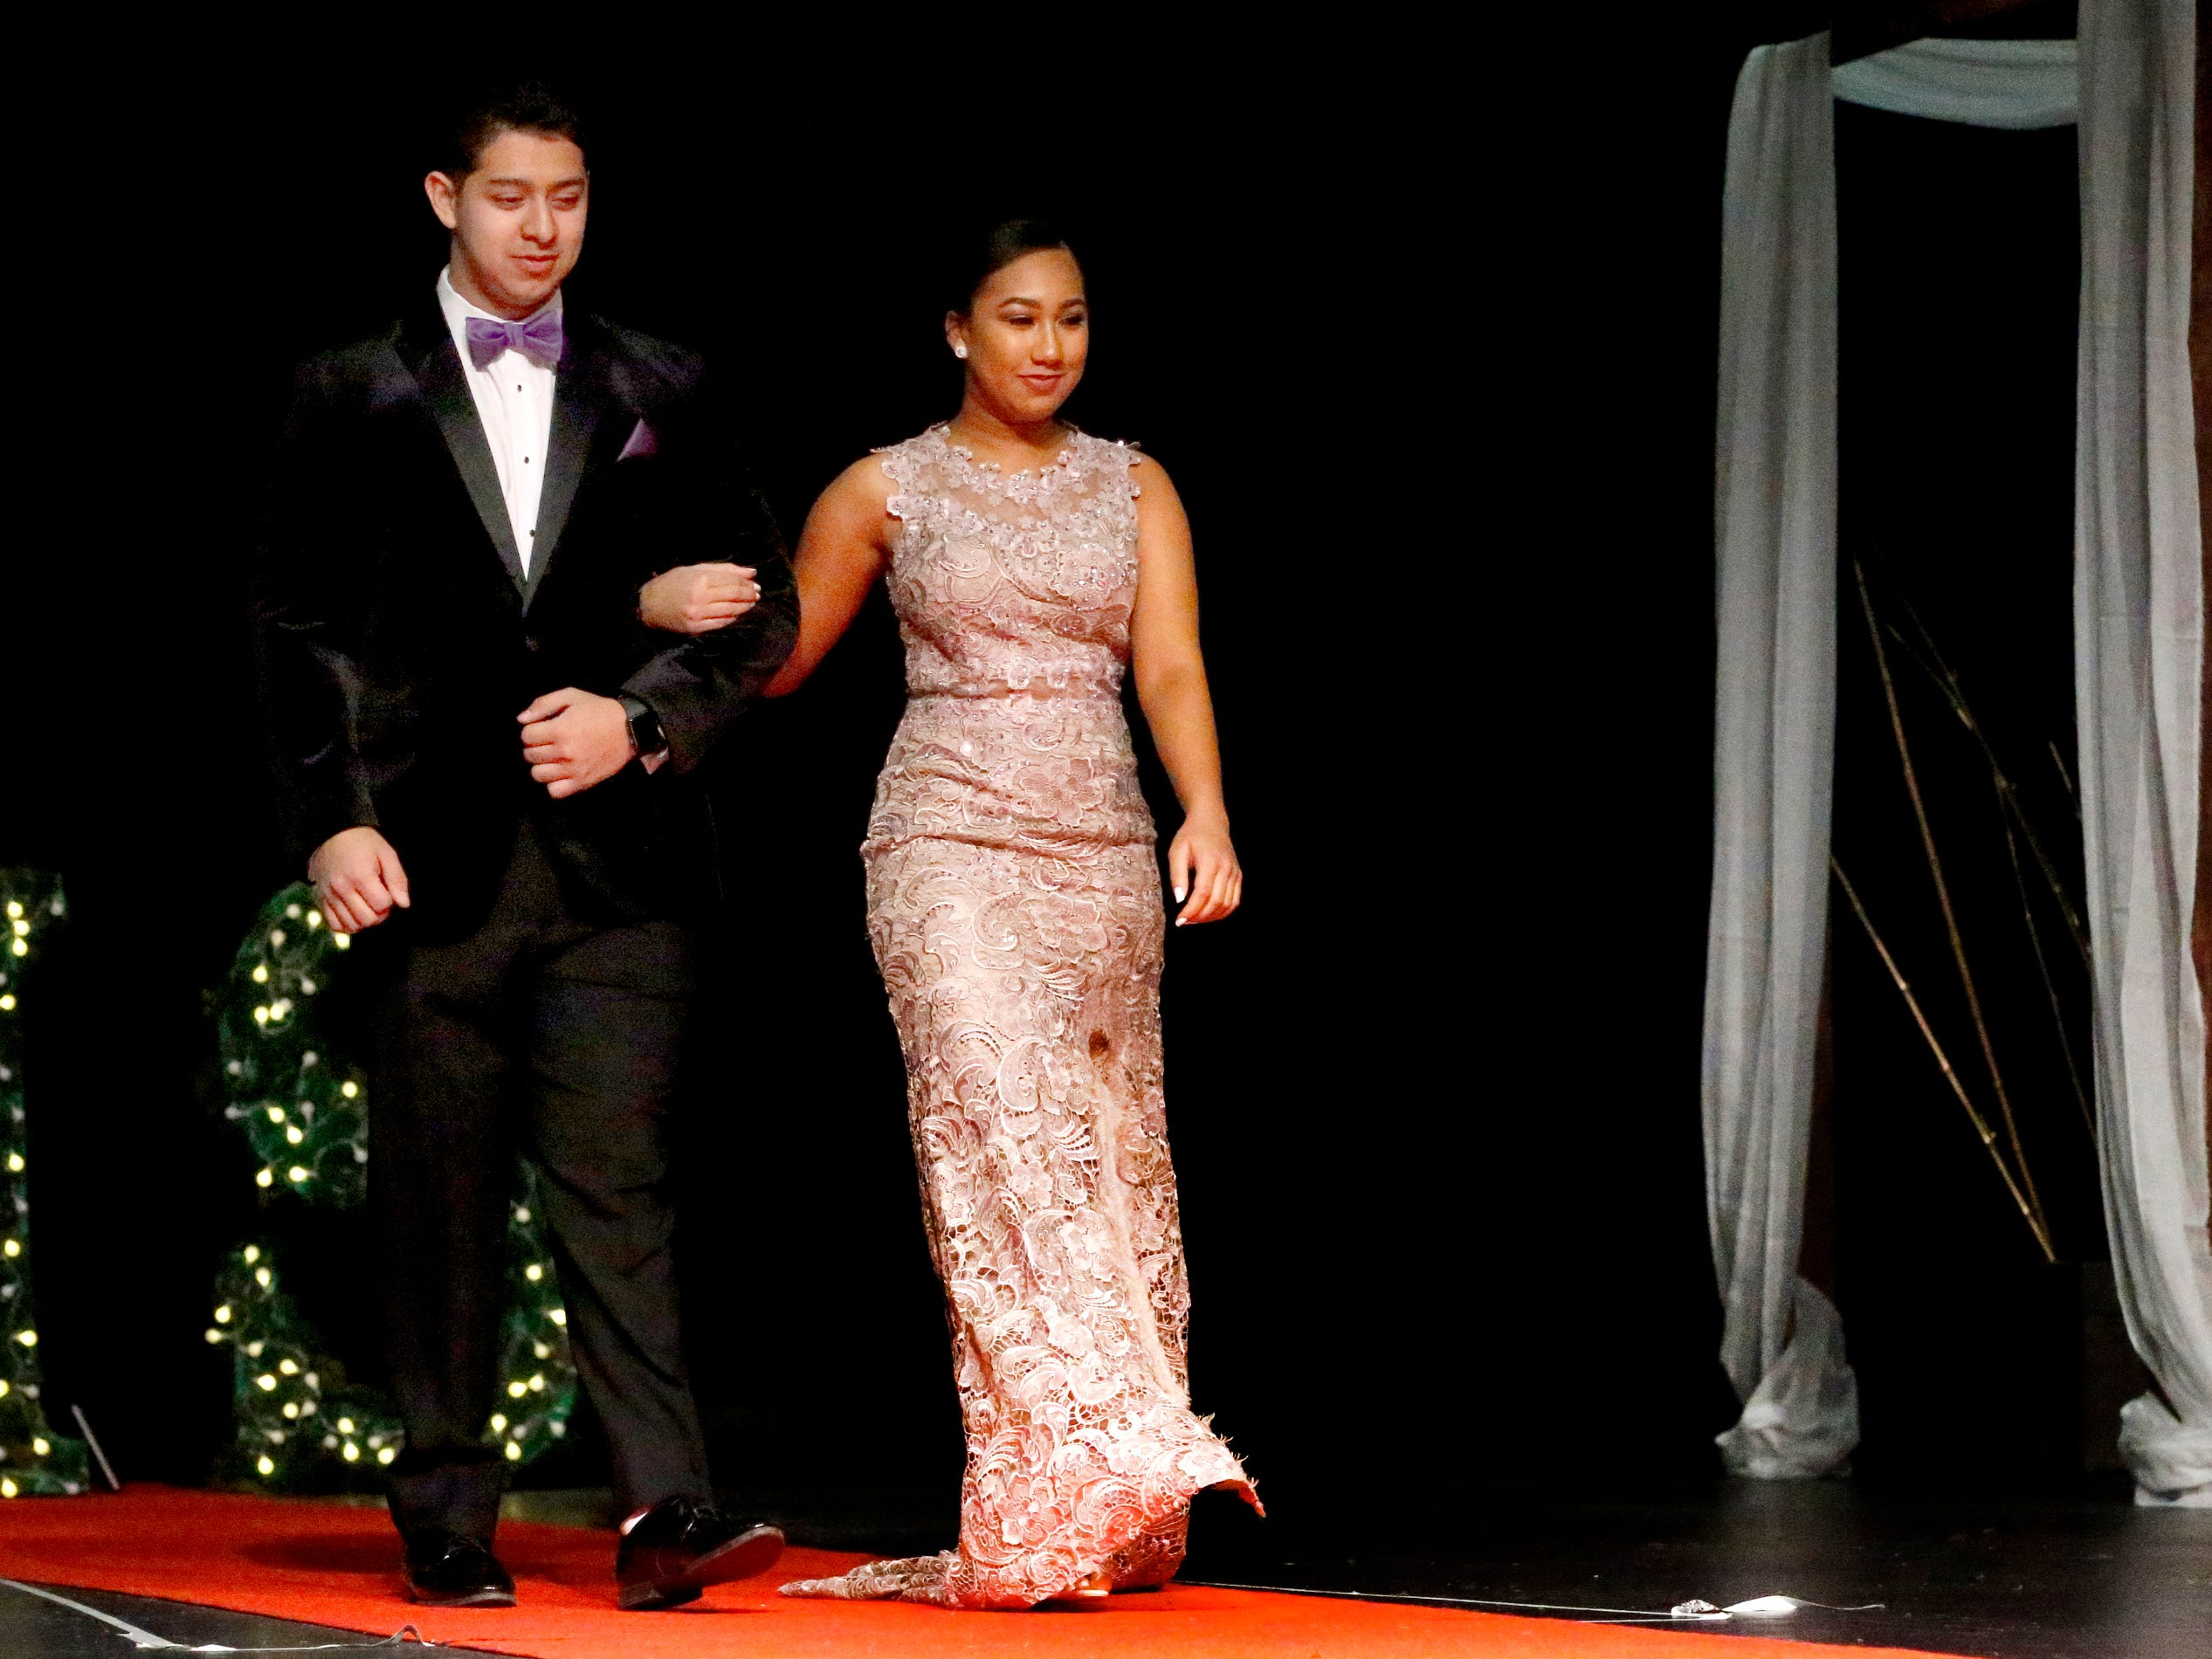 Chris Palacios, left and Aleah Carter, right show off the latest in prom fashions during the Siegel Prom Fashion show on Thursday, Feb. 14, 2019.